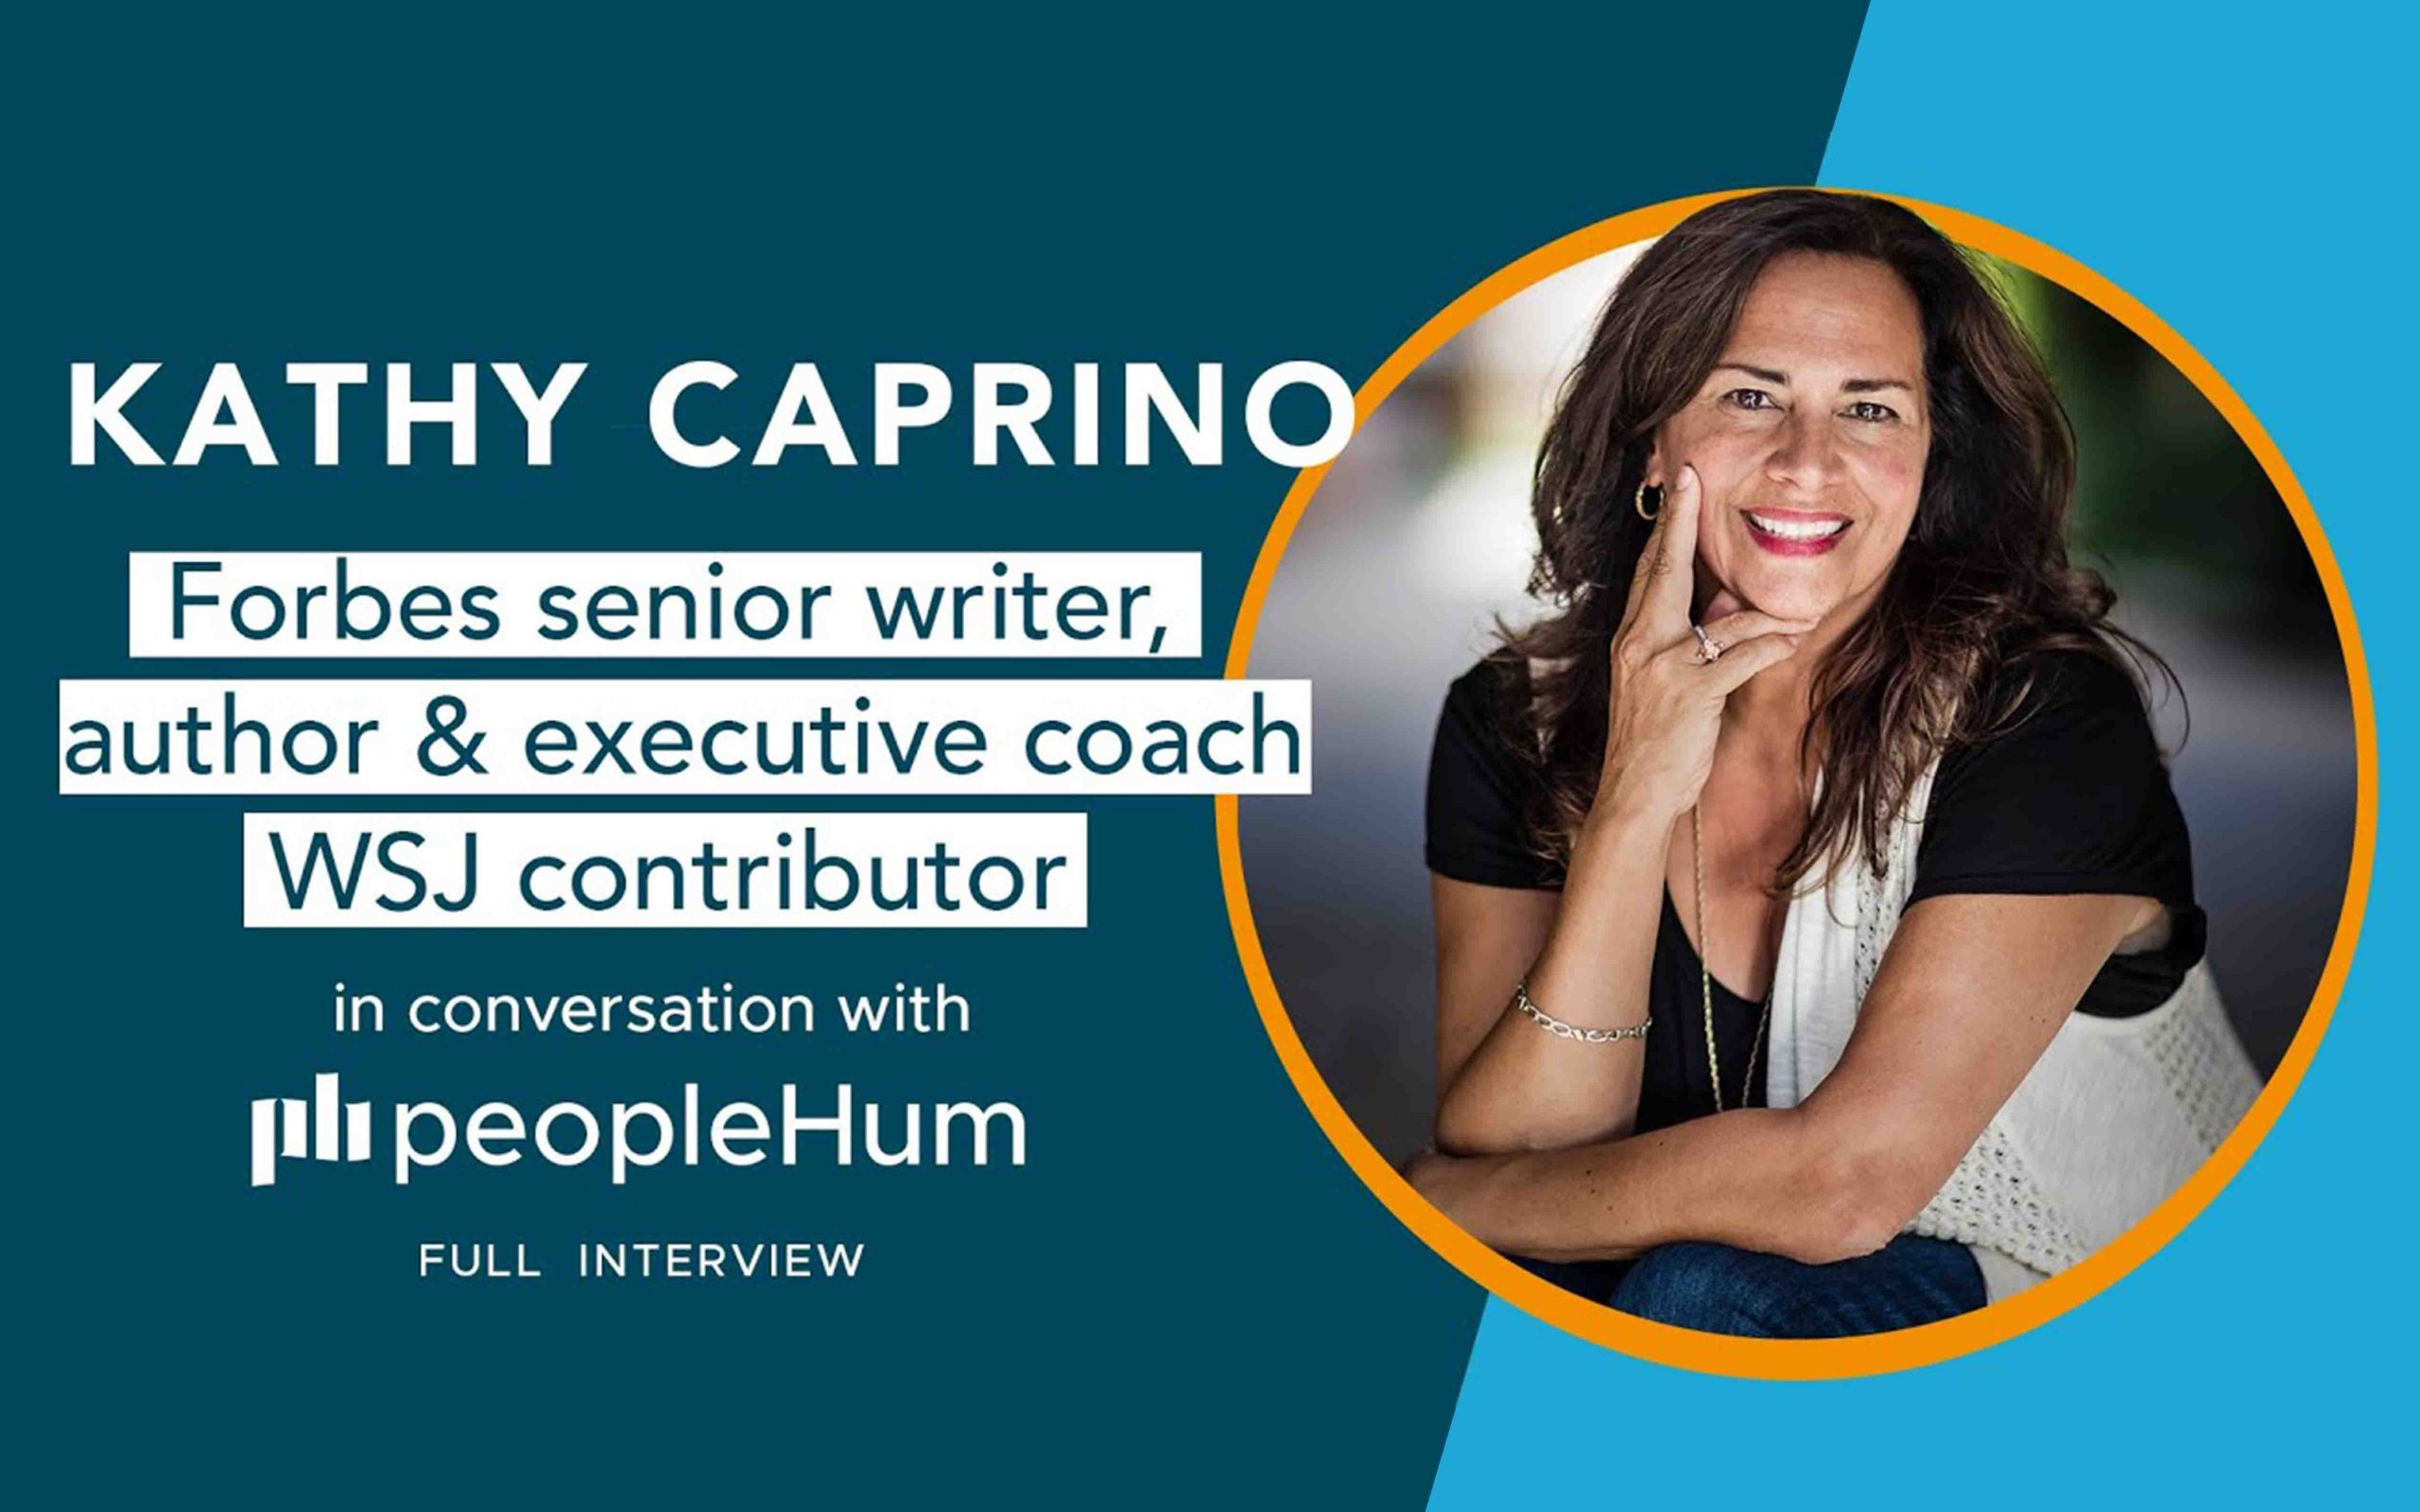 Kathy Caprino: In Conversation With peopleHum